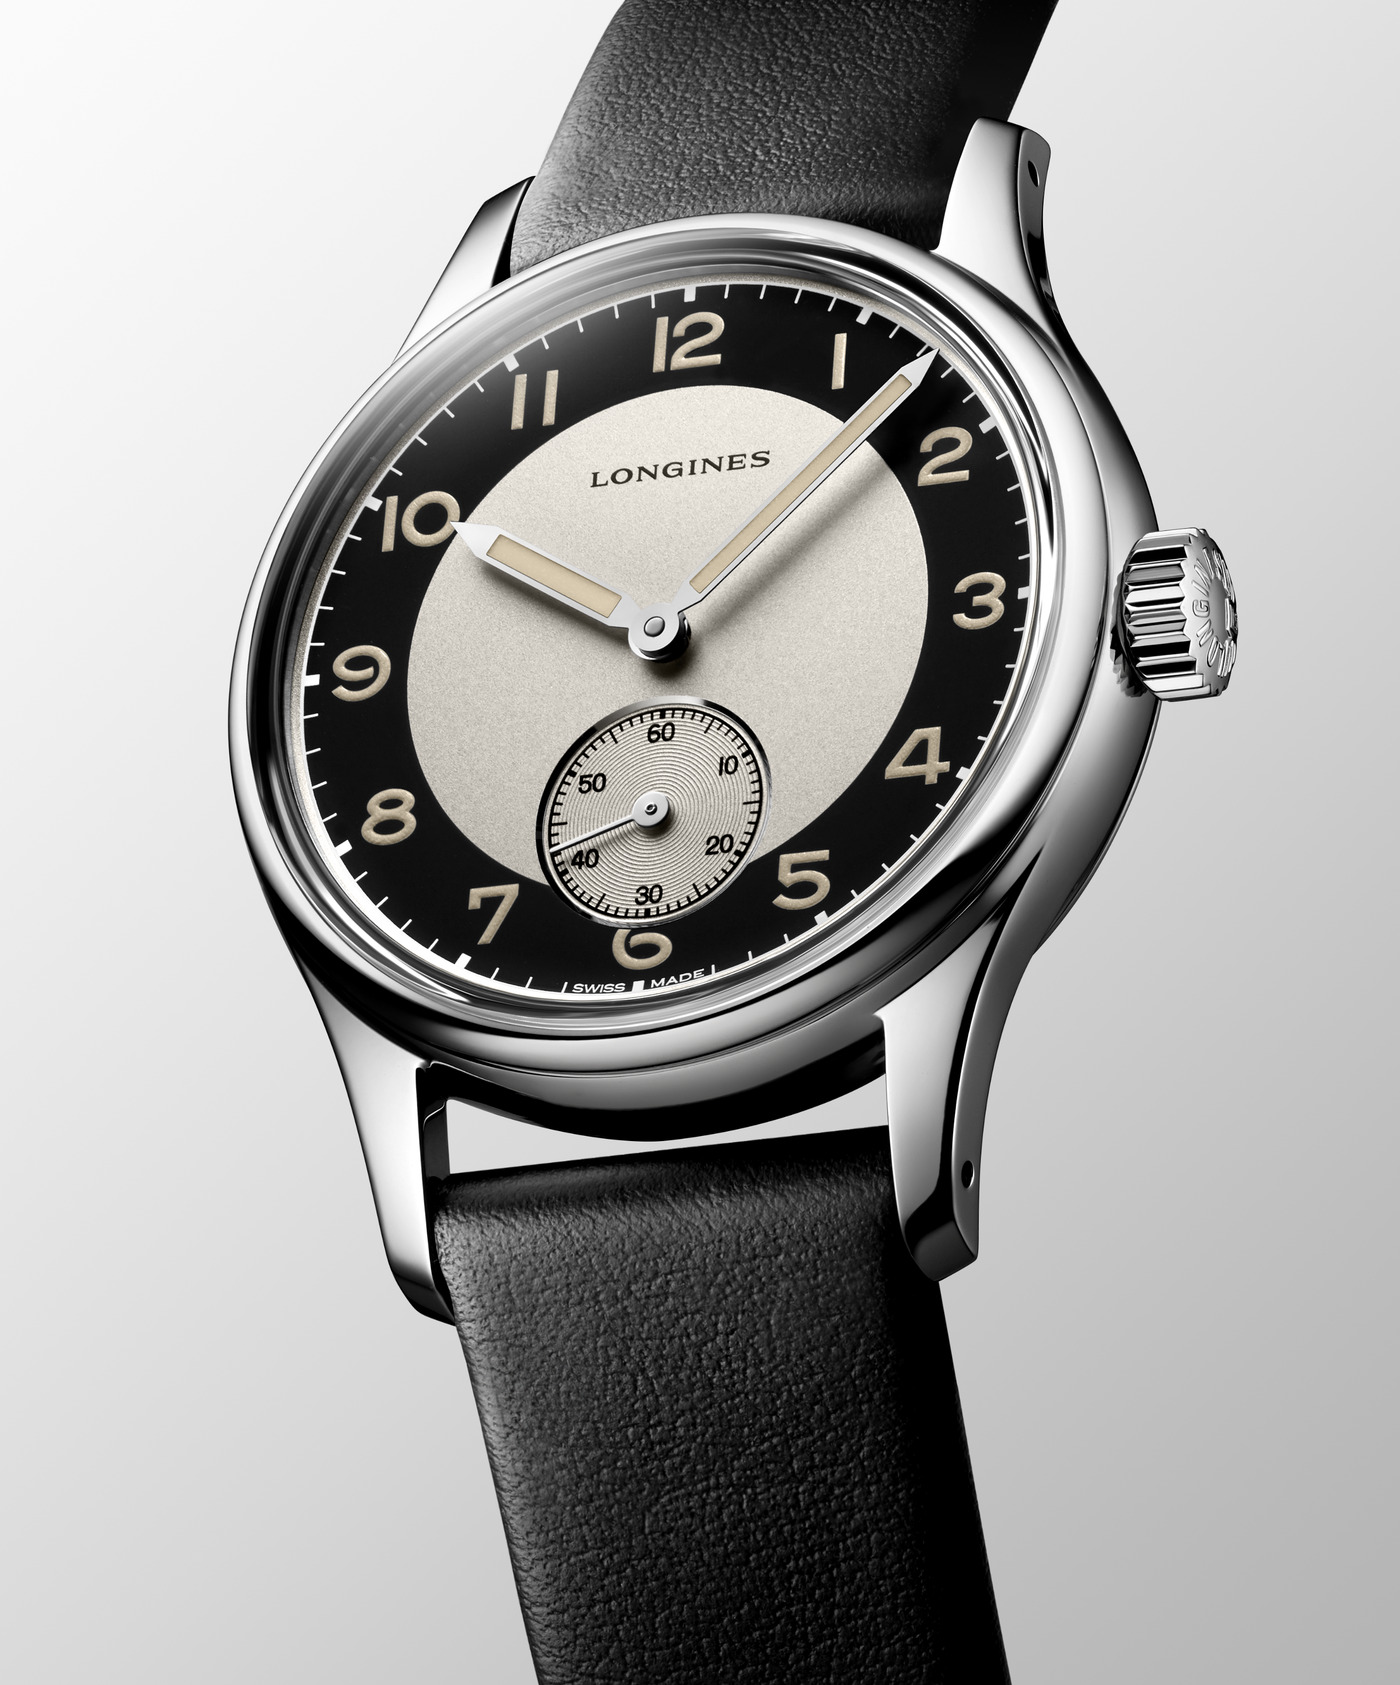 Longines The Longines Heritage Classic - Tuxedo  Watch 8